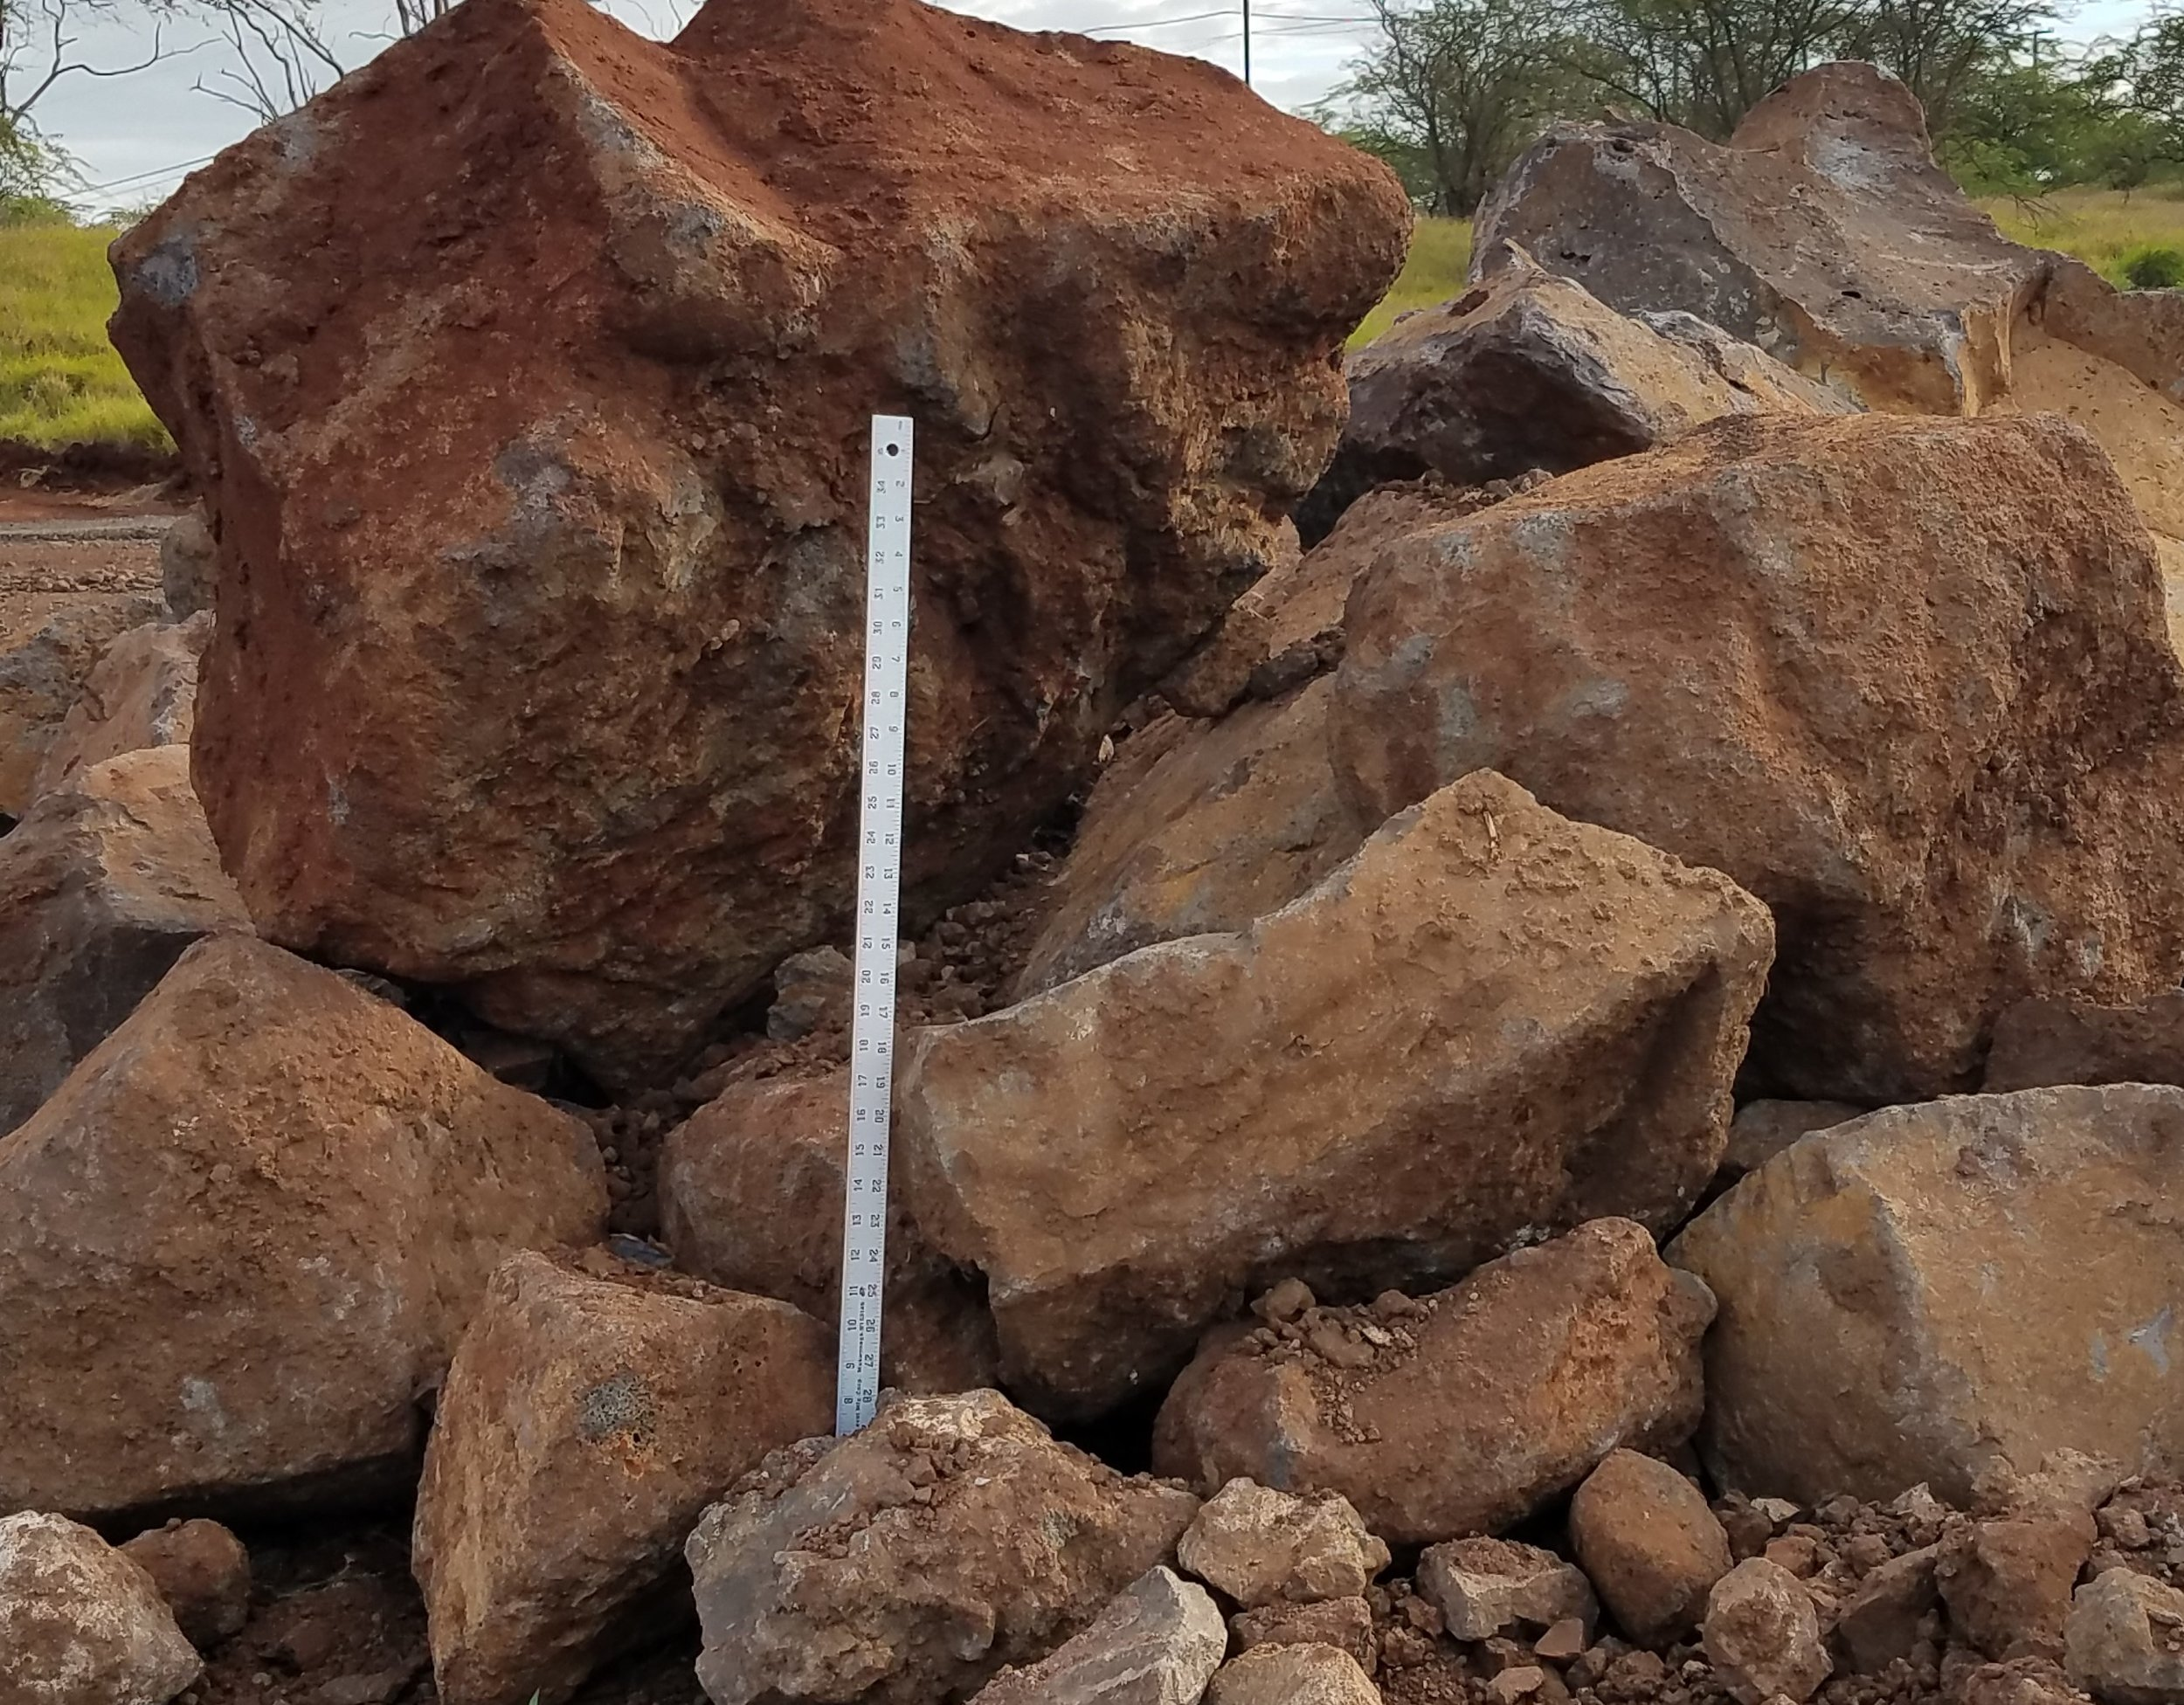 Landscape Rock - Various Sizes - Competitive Pricing Contact Us or Call (808) 856-6231 for Prices